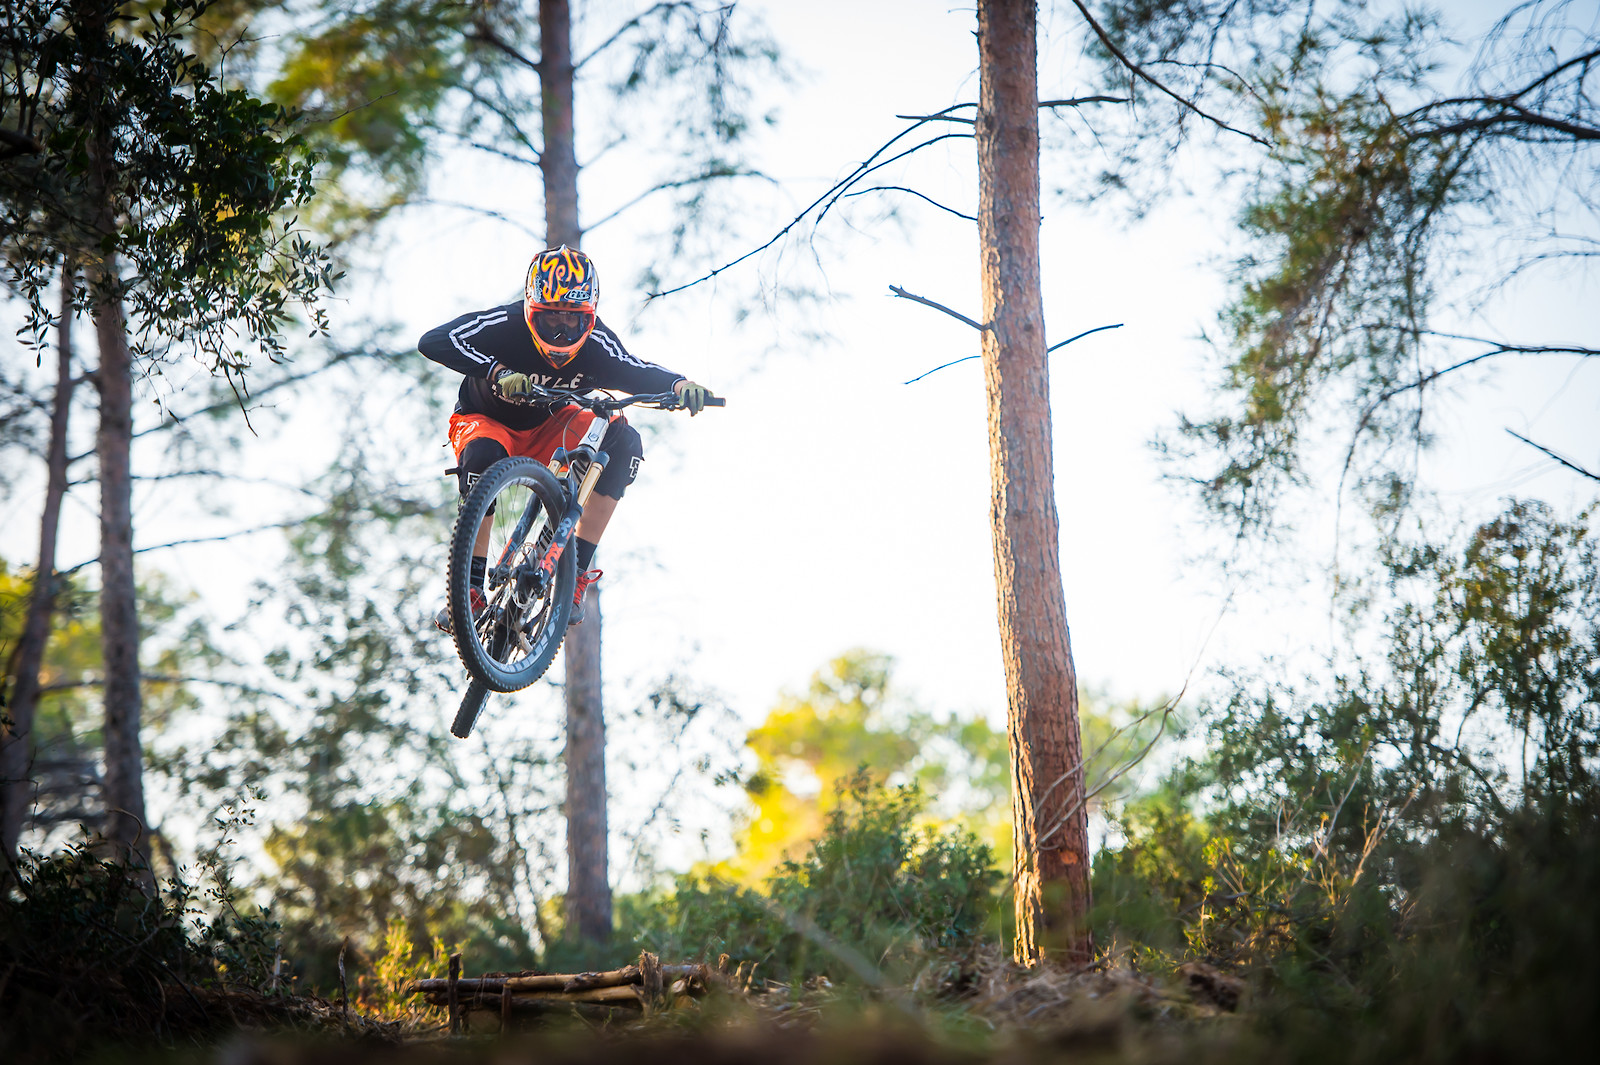 Sunset Fun - iceman2058 - Mountain Biking Pictures - Vital MTB